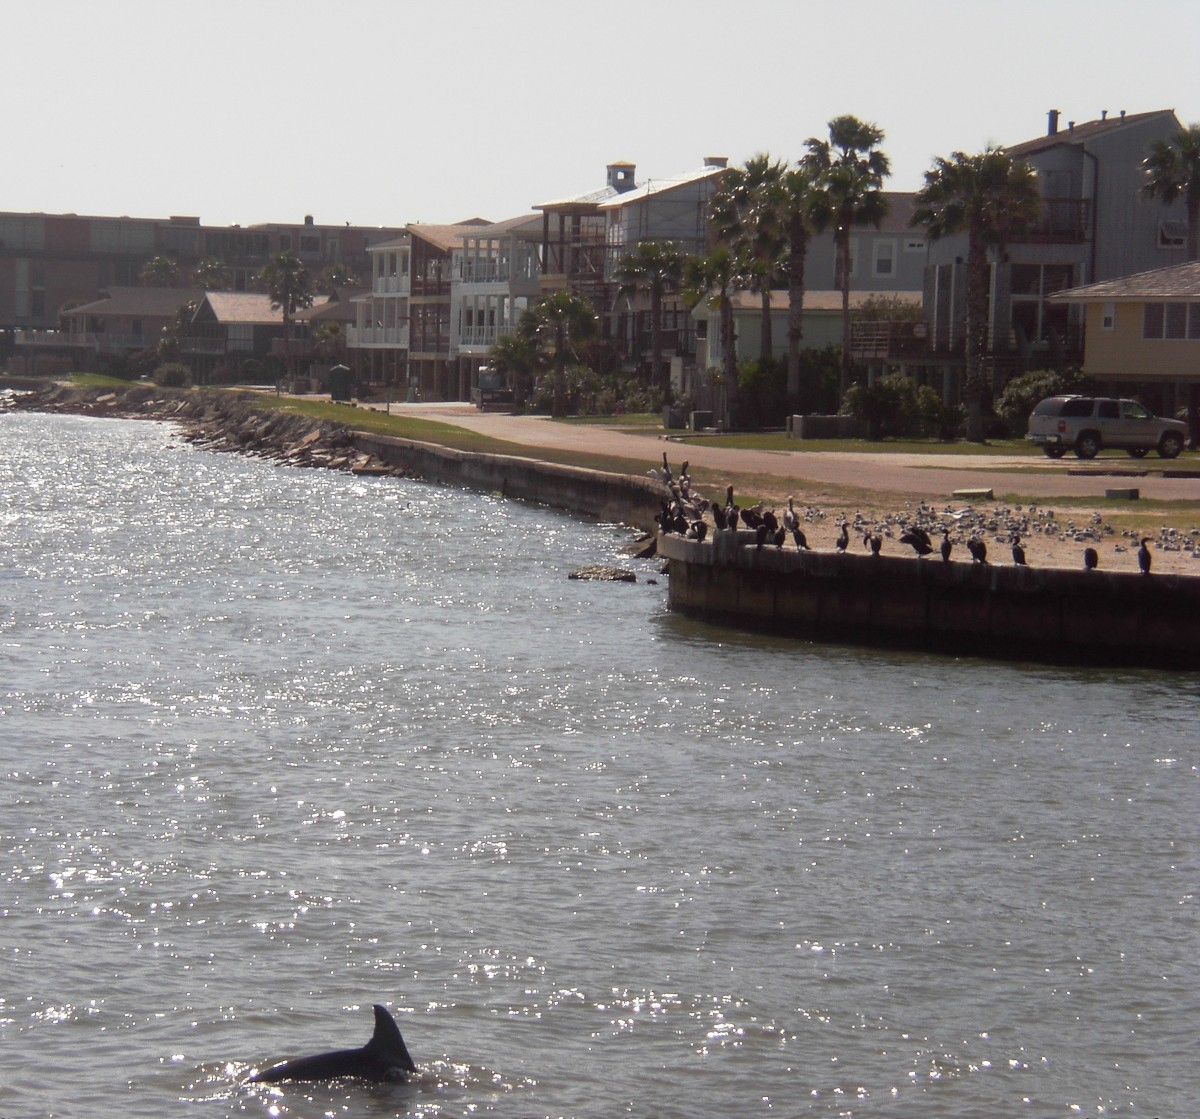 Dolphin watching in Port Aransas. Texas